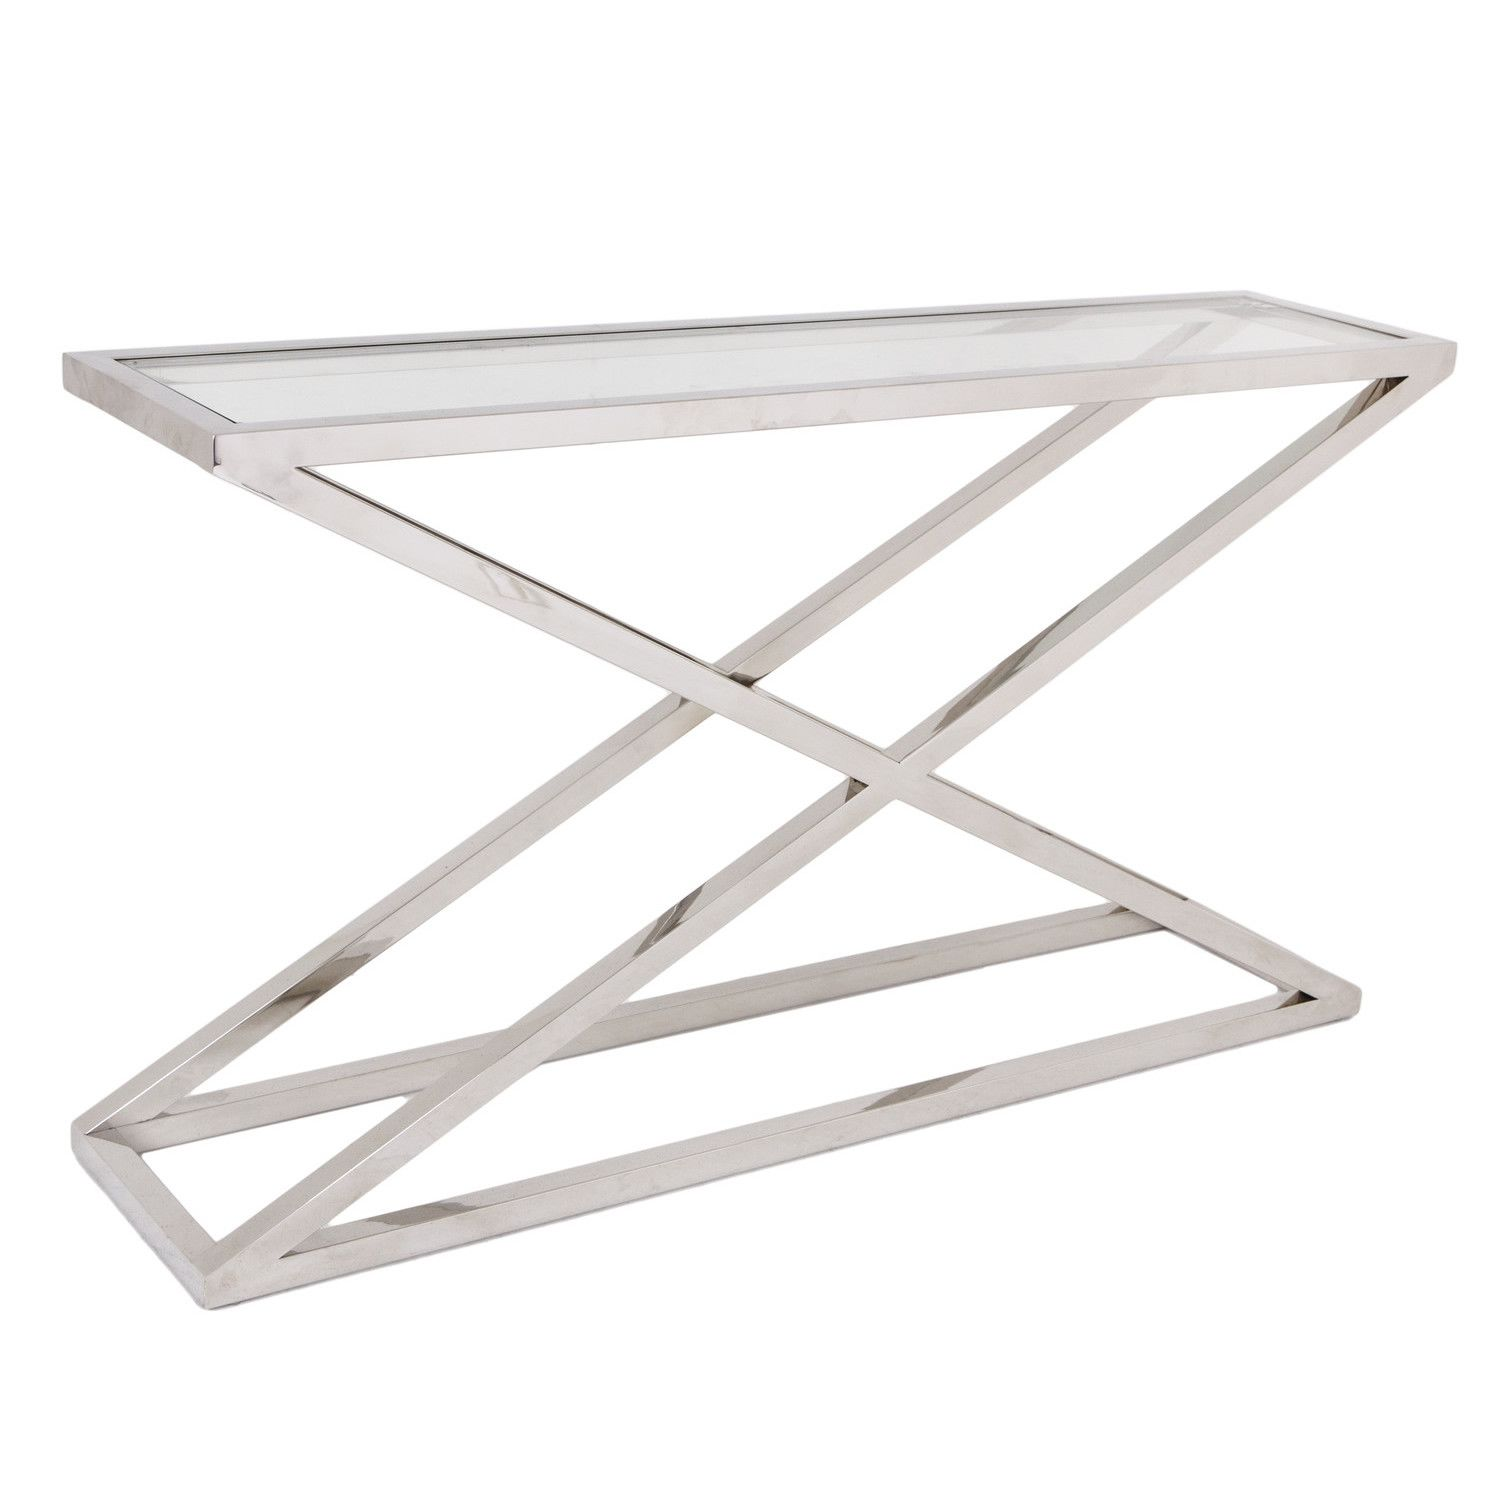 Beau Brooklyn Chunky Chrome U0026 Glass Console Table U2013 Shropshire Design